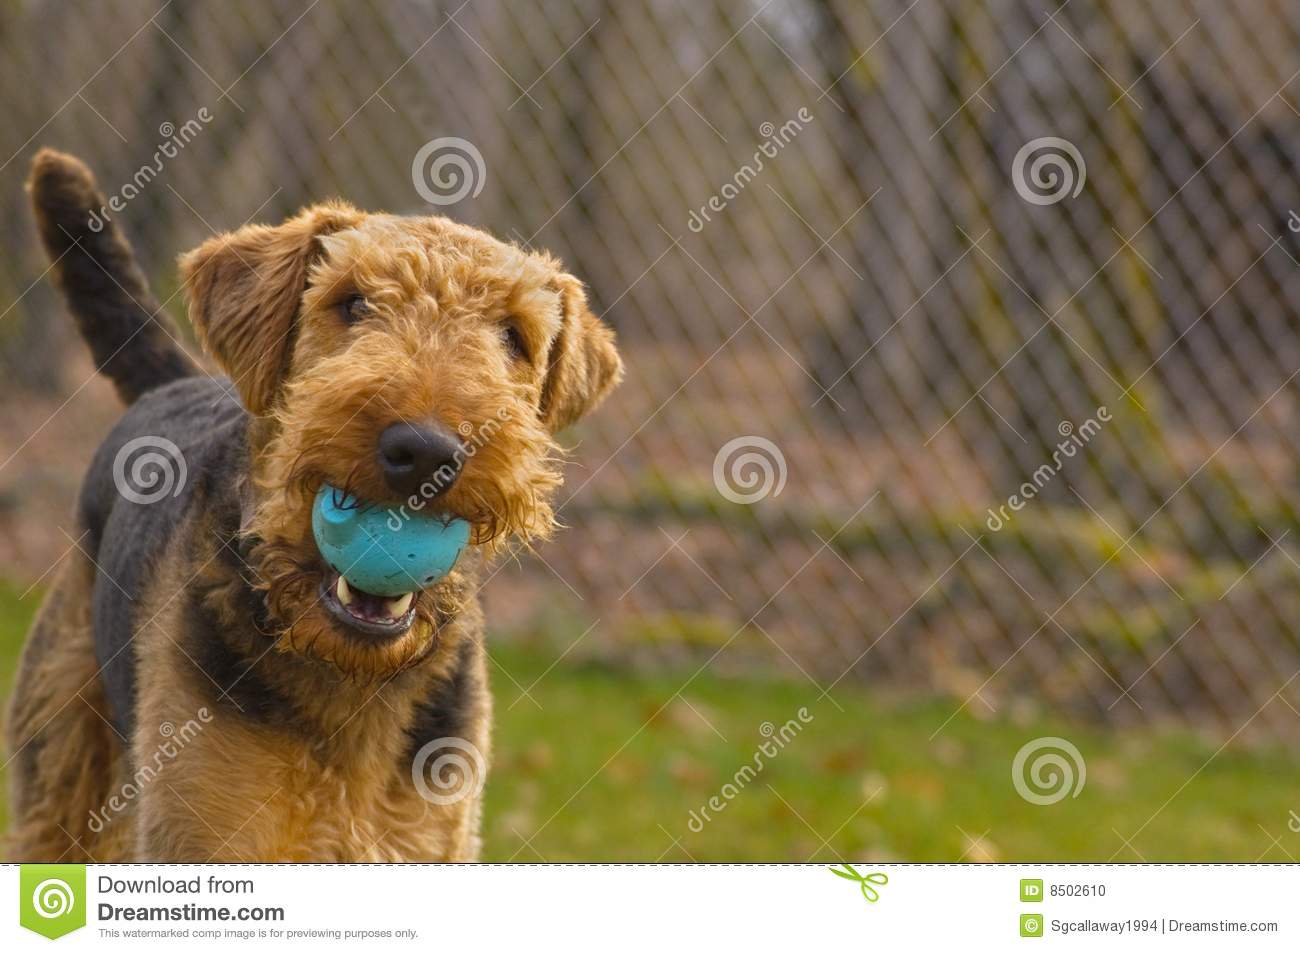 Dog. Airedale. RoyaltyFree Stock Photo  CartoonDealer.com 55825125